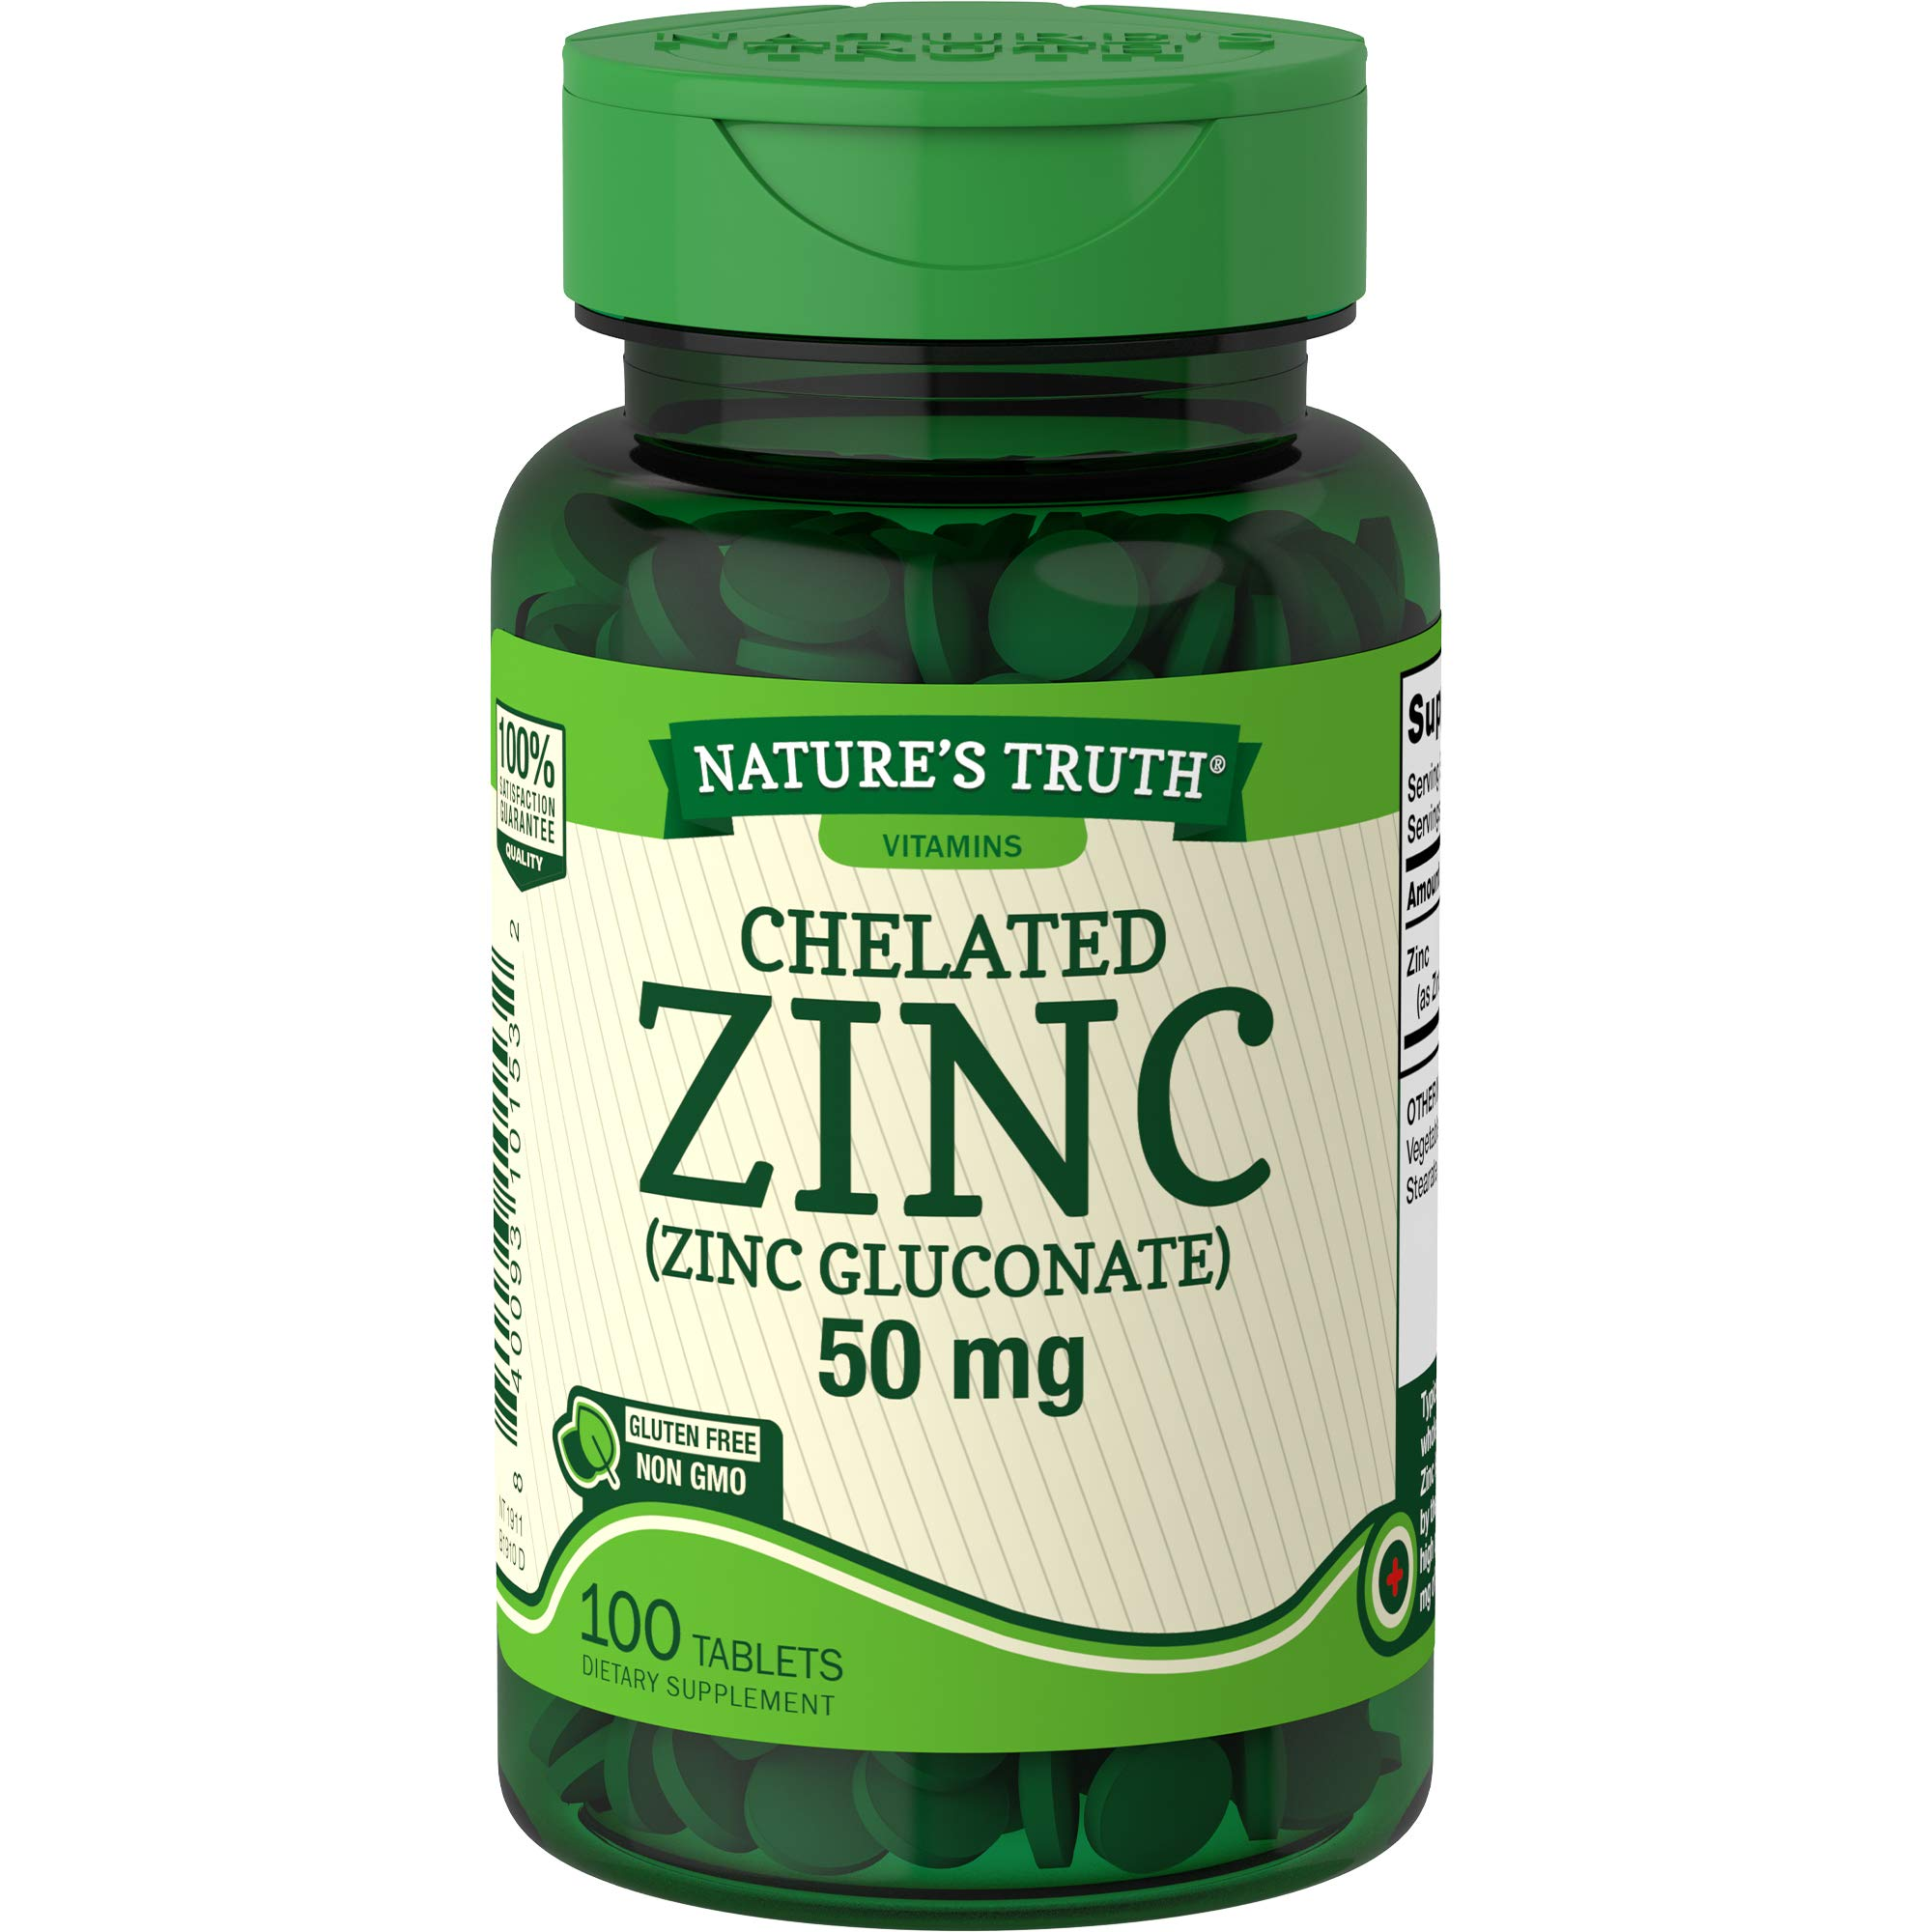 Nature's Truth Chelated Zinc 50mg   100 Tablets   Essential Mineral Supplement   from Zinc Gluconate   Vegetarian, Non-GMO, Gluten Free